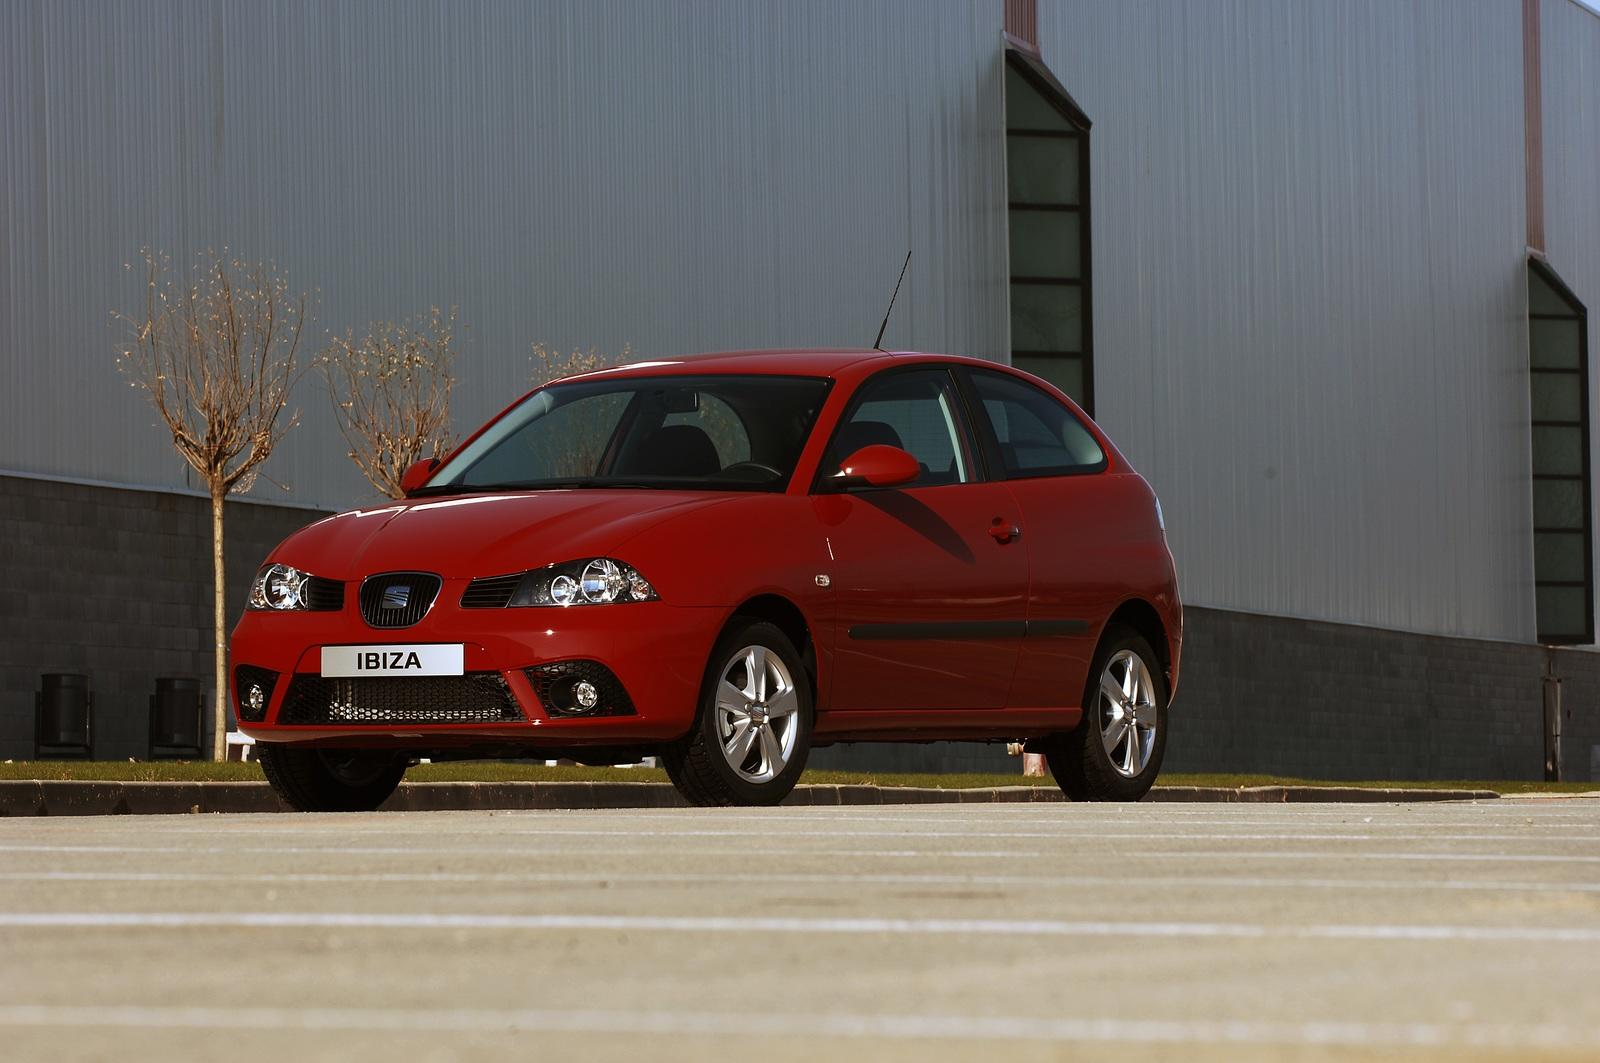 2007 seat ibiza sportrider picture 148519 car review top speed. Black Bedroom Furniture Sets. Home Design Ideas